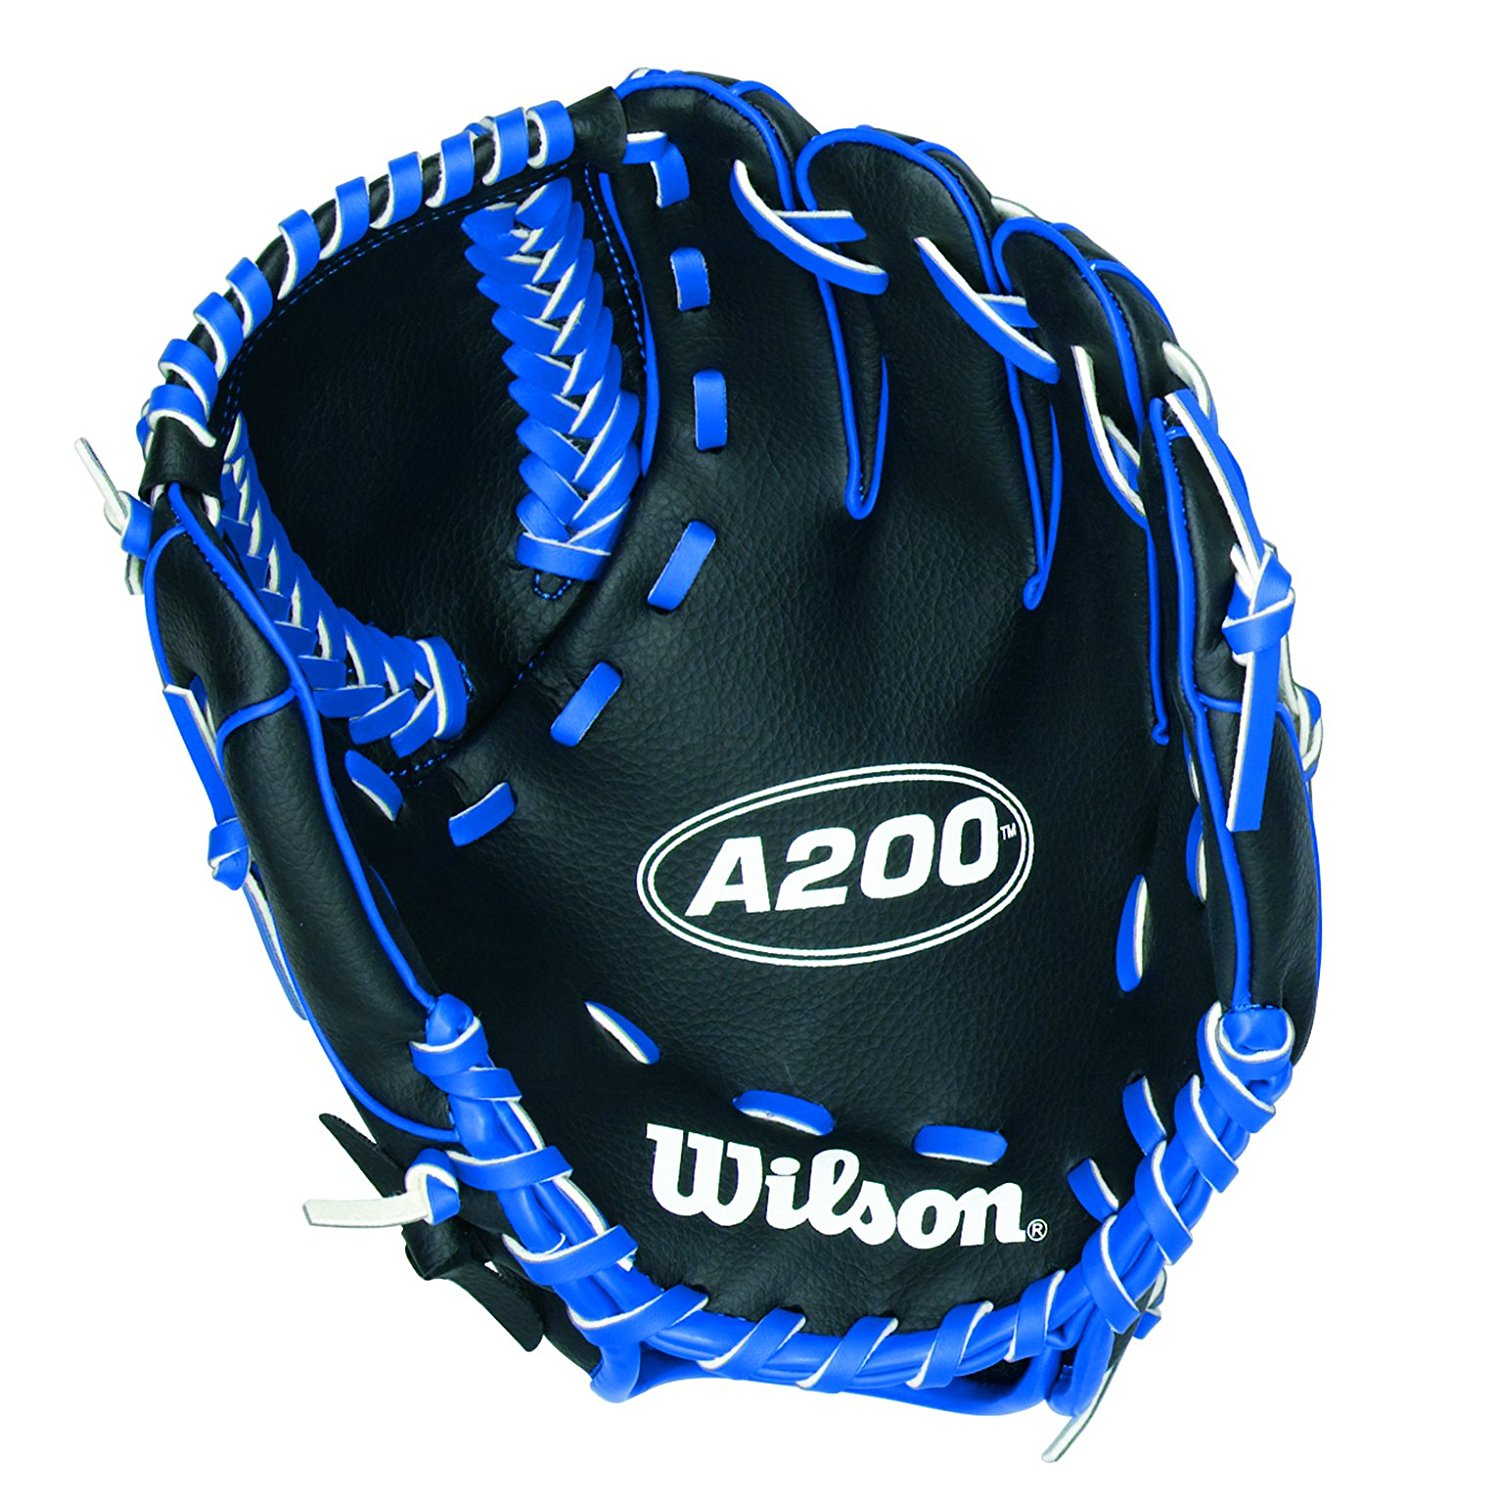 Wilson A200 Series Baseball Glove